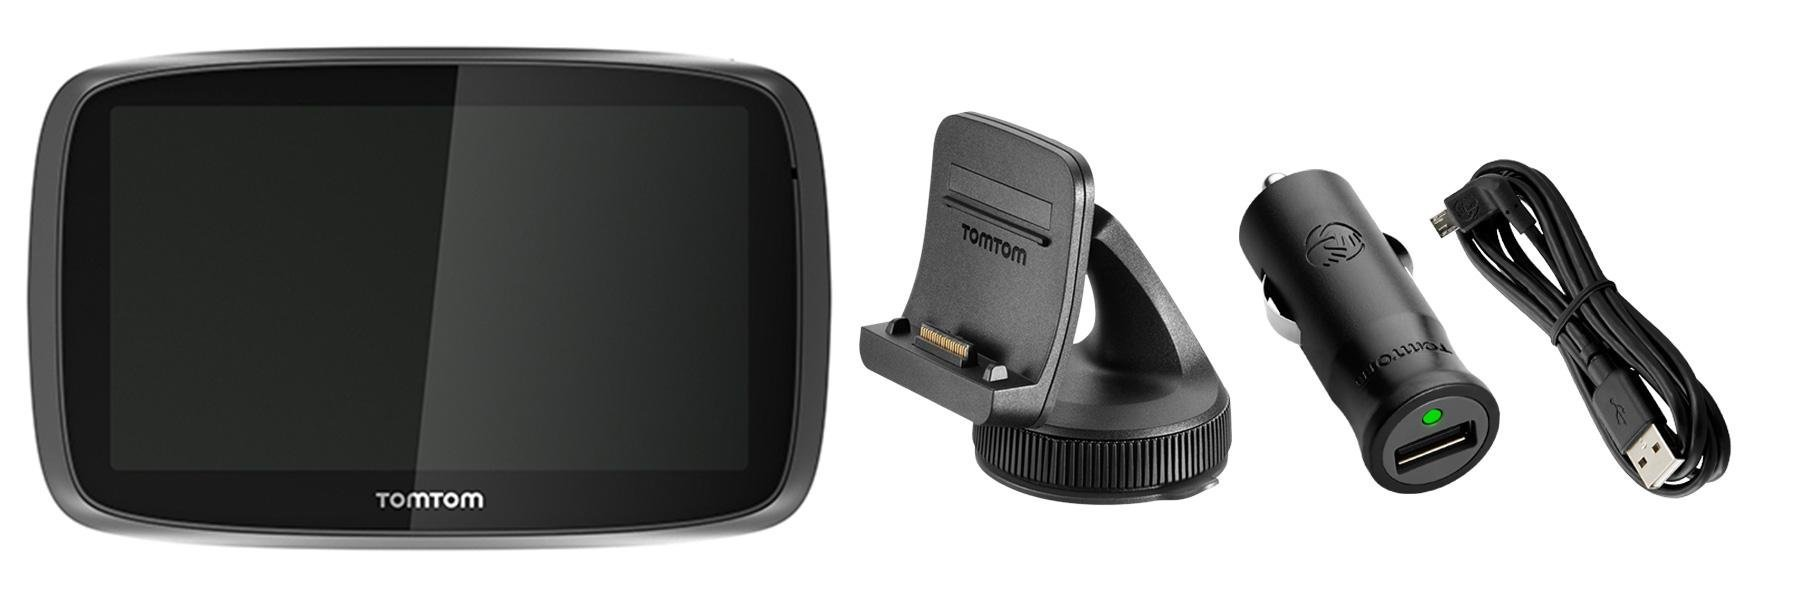 TomTom Go 510 World Navigationssystem 5 Zoll: Amazon.de